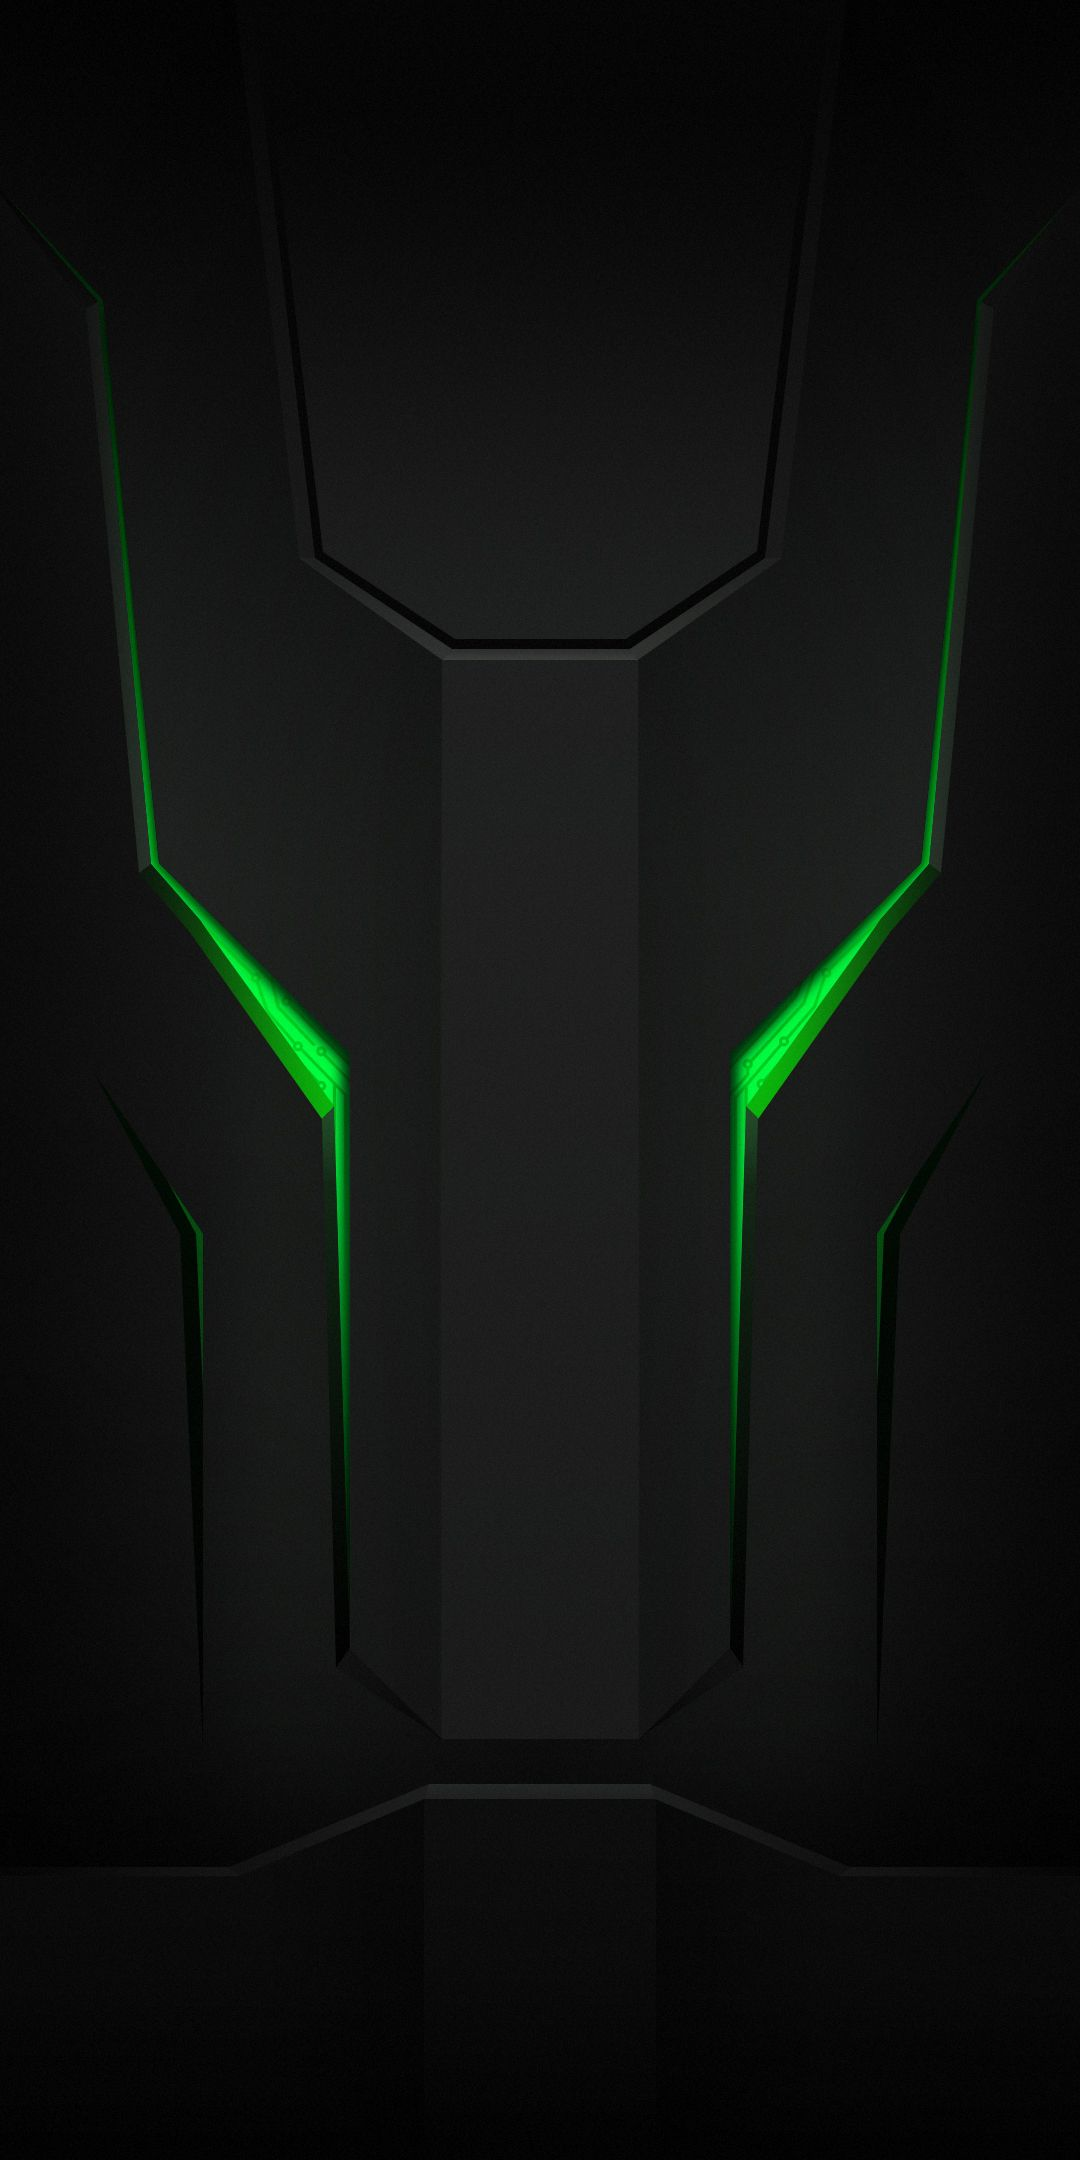 Download Xiaomi Black Shark Helo Wallpapers & Ringtones ...